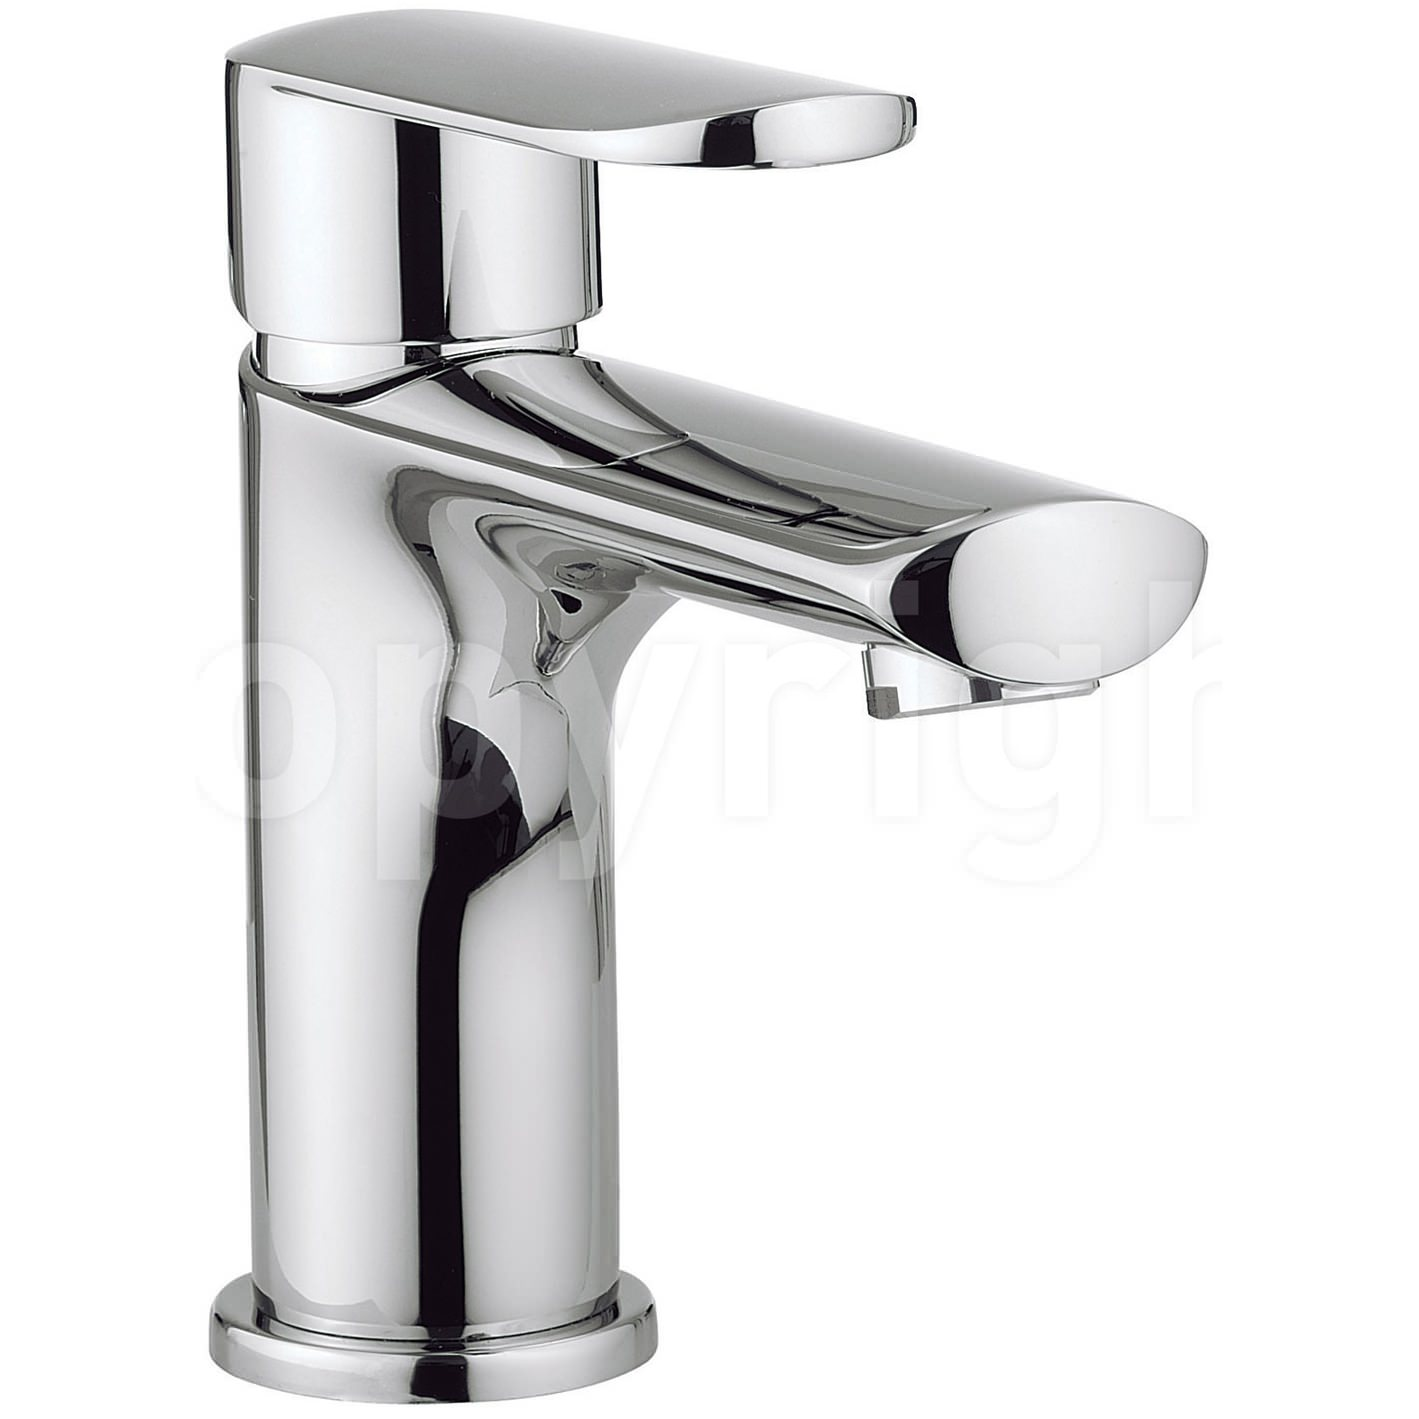 crosswater voyager monobloc chrome basin mixer tap. Black Bedroom Furniture Sets. Home Design Ideas